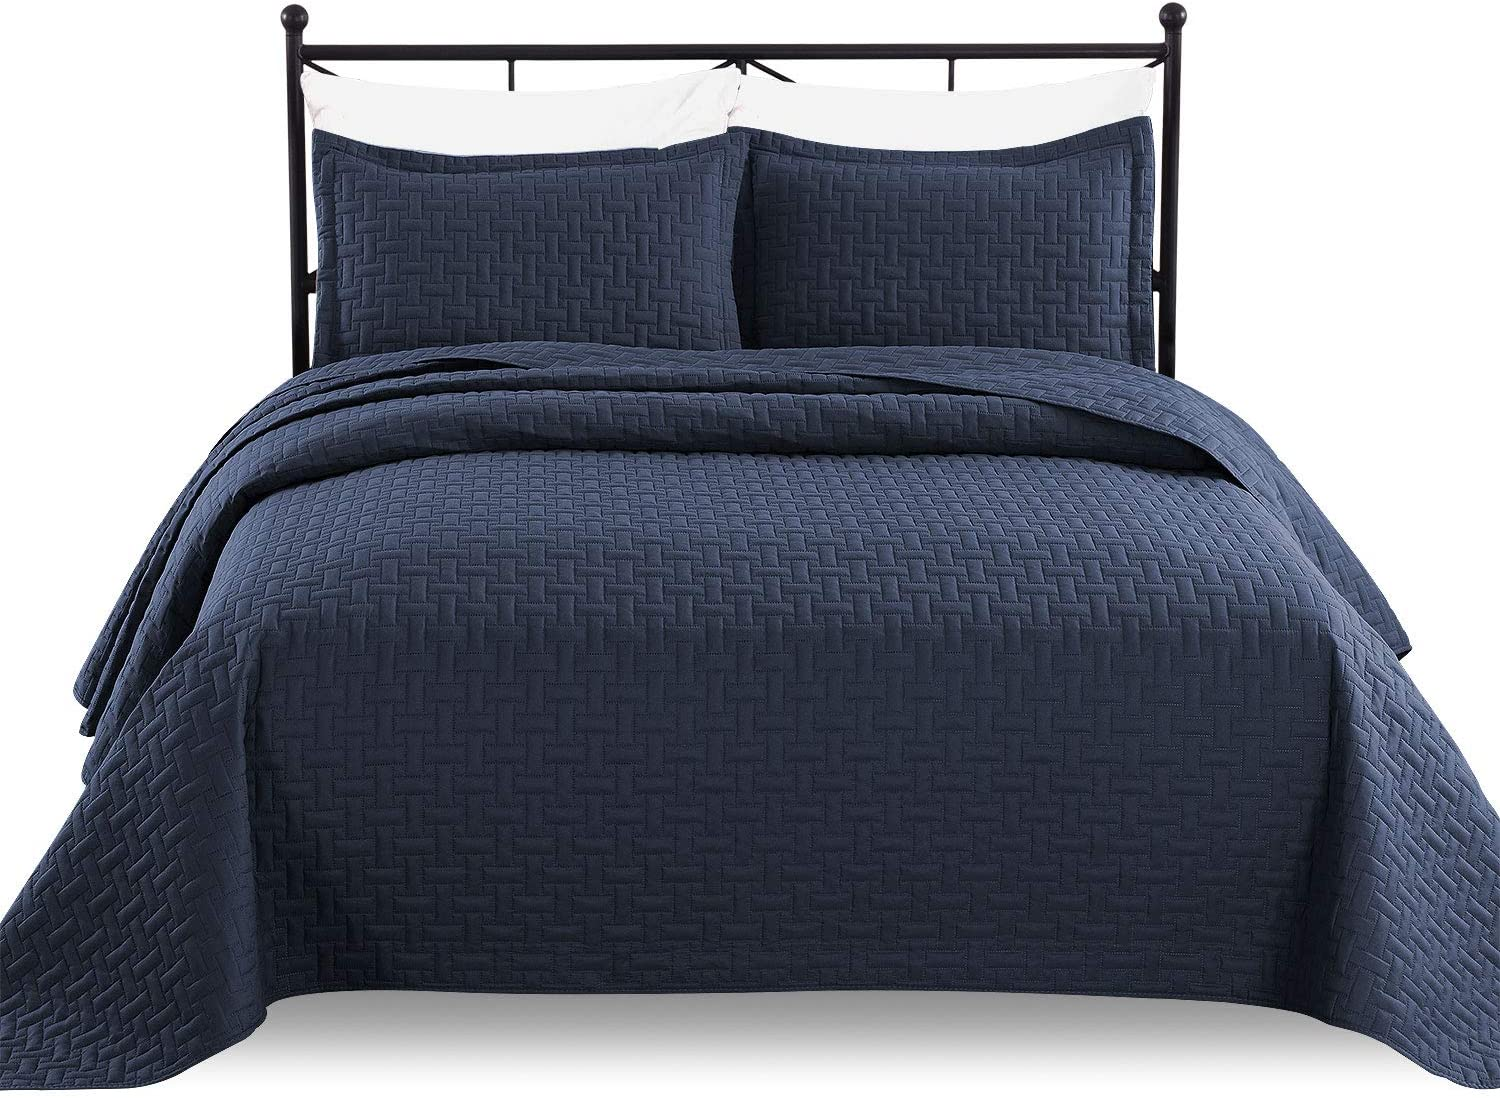 Luxe Bedding 3-piece Oversized Quilted Bedspread Coverlet Set (King/CalKing, Navy Blue)